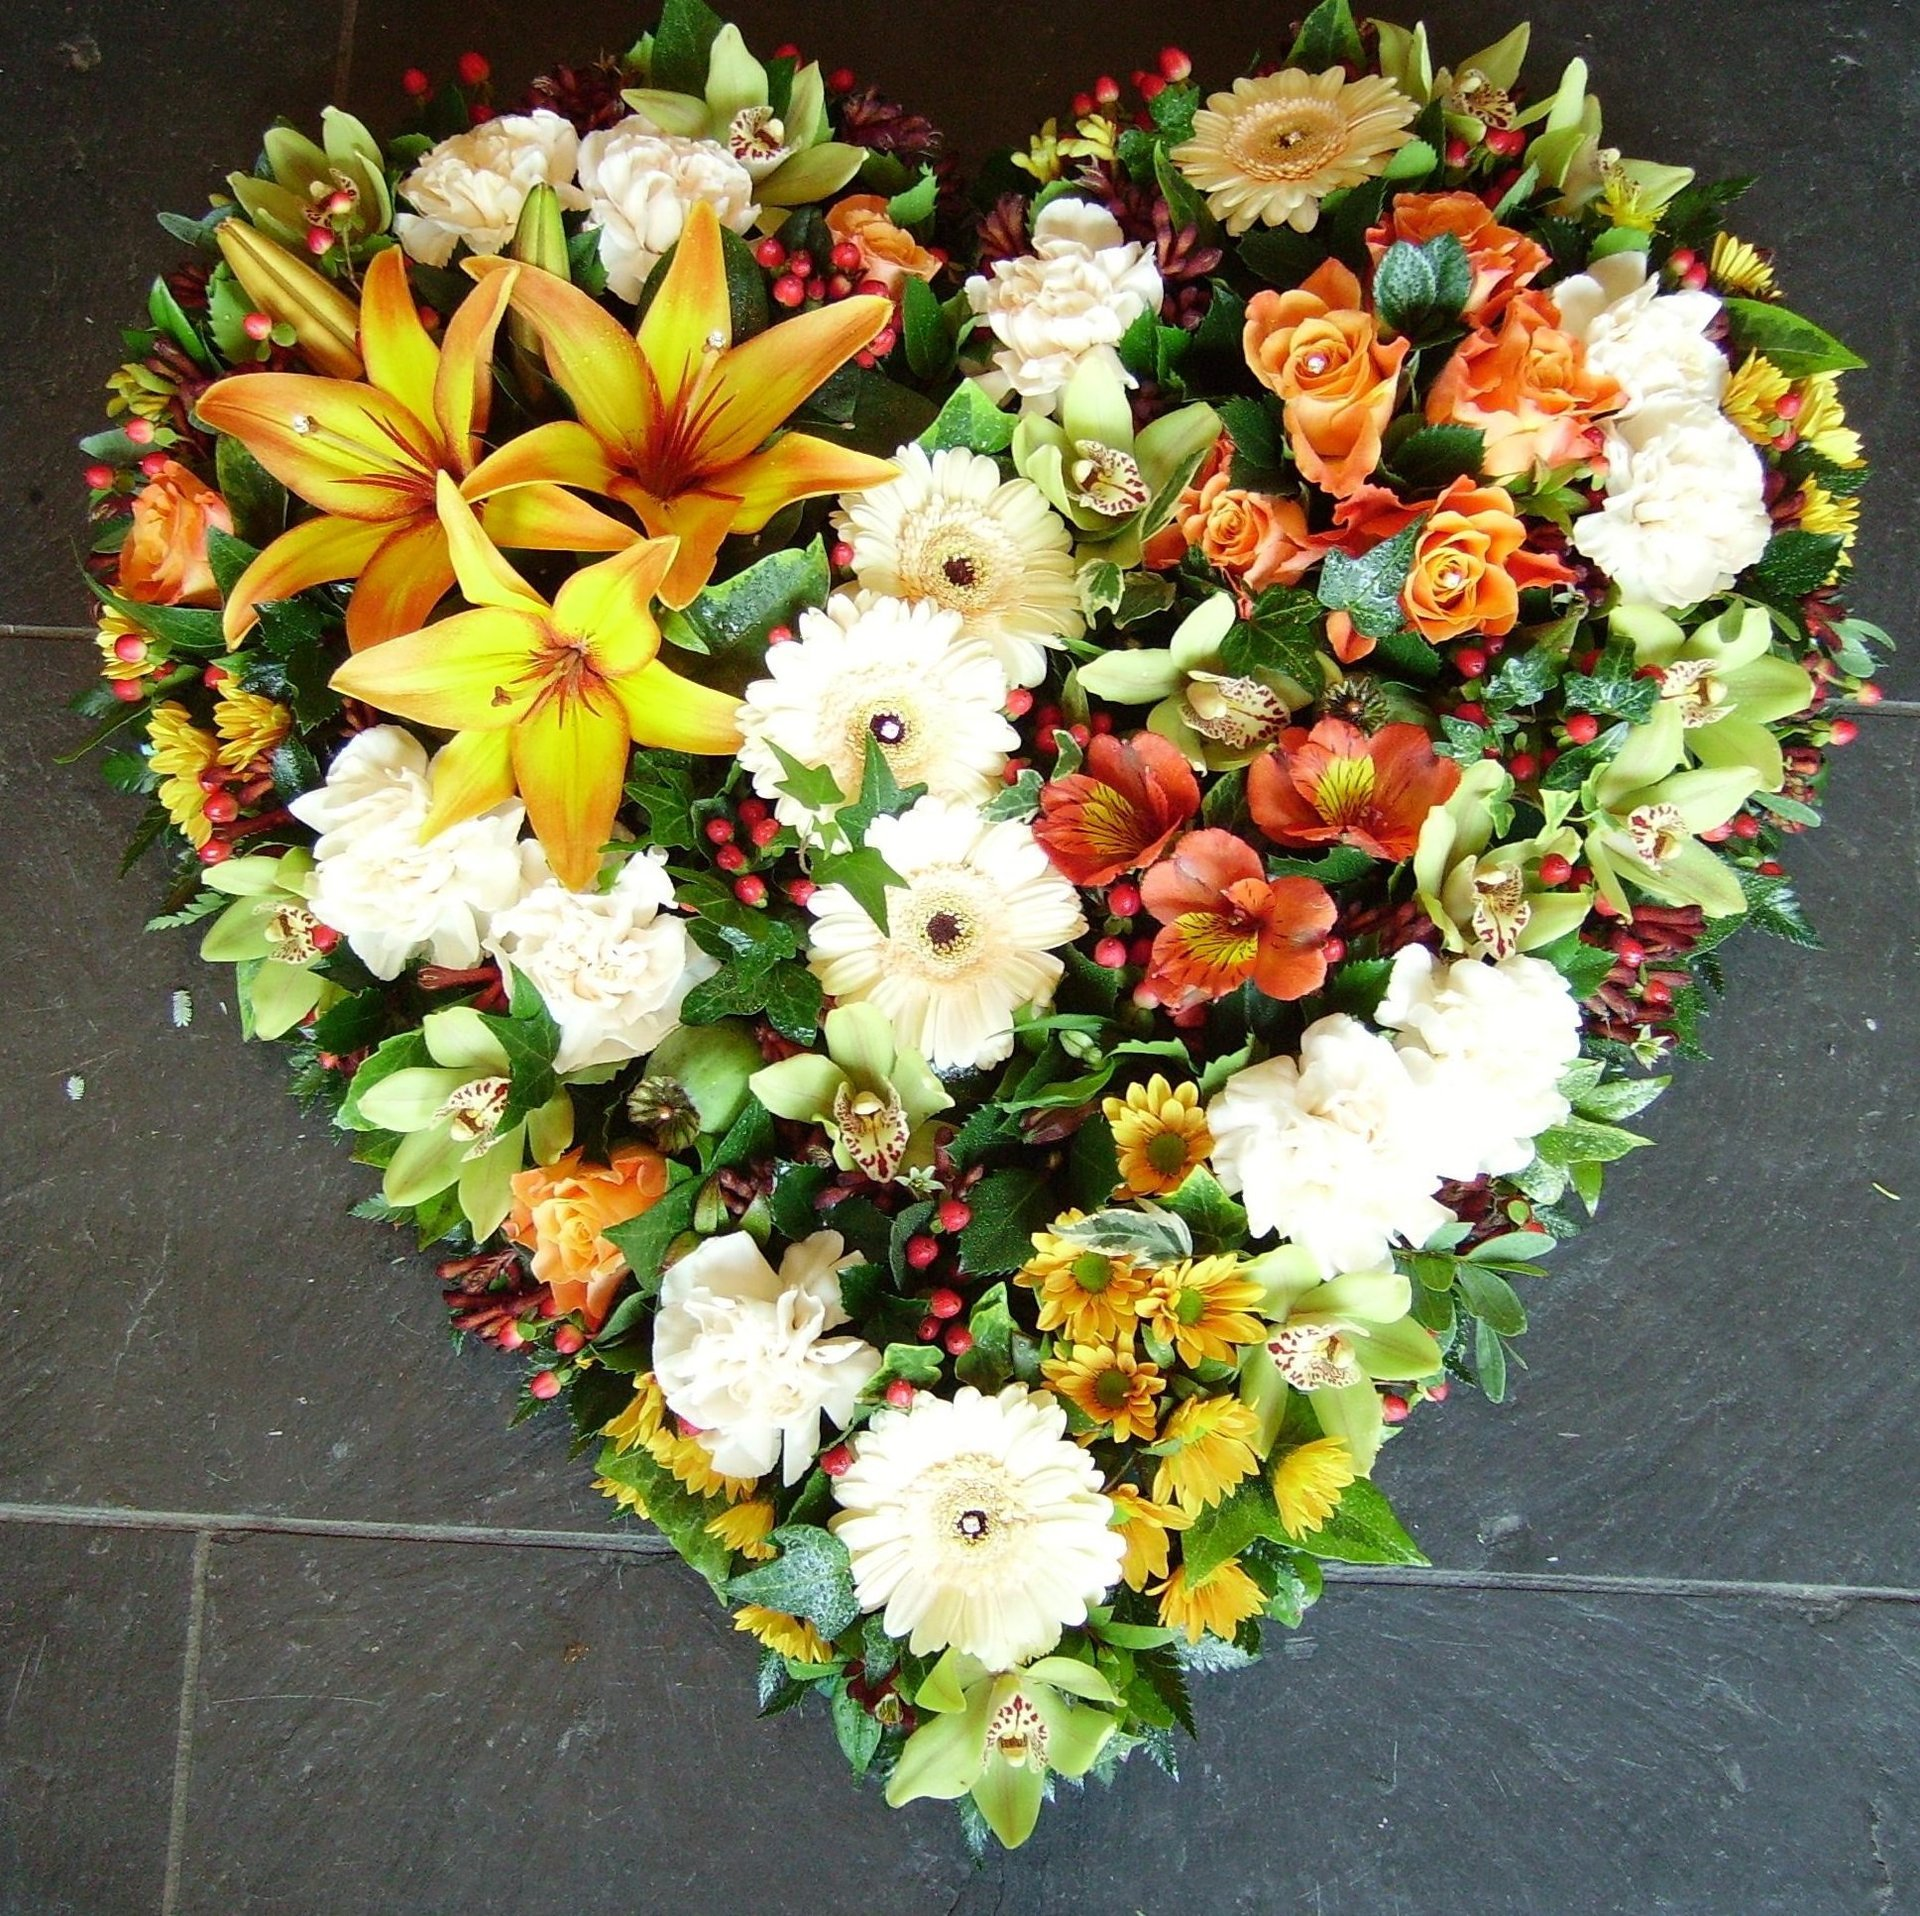 yellow and white flowers in heart shape